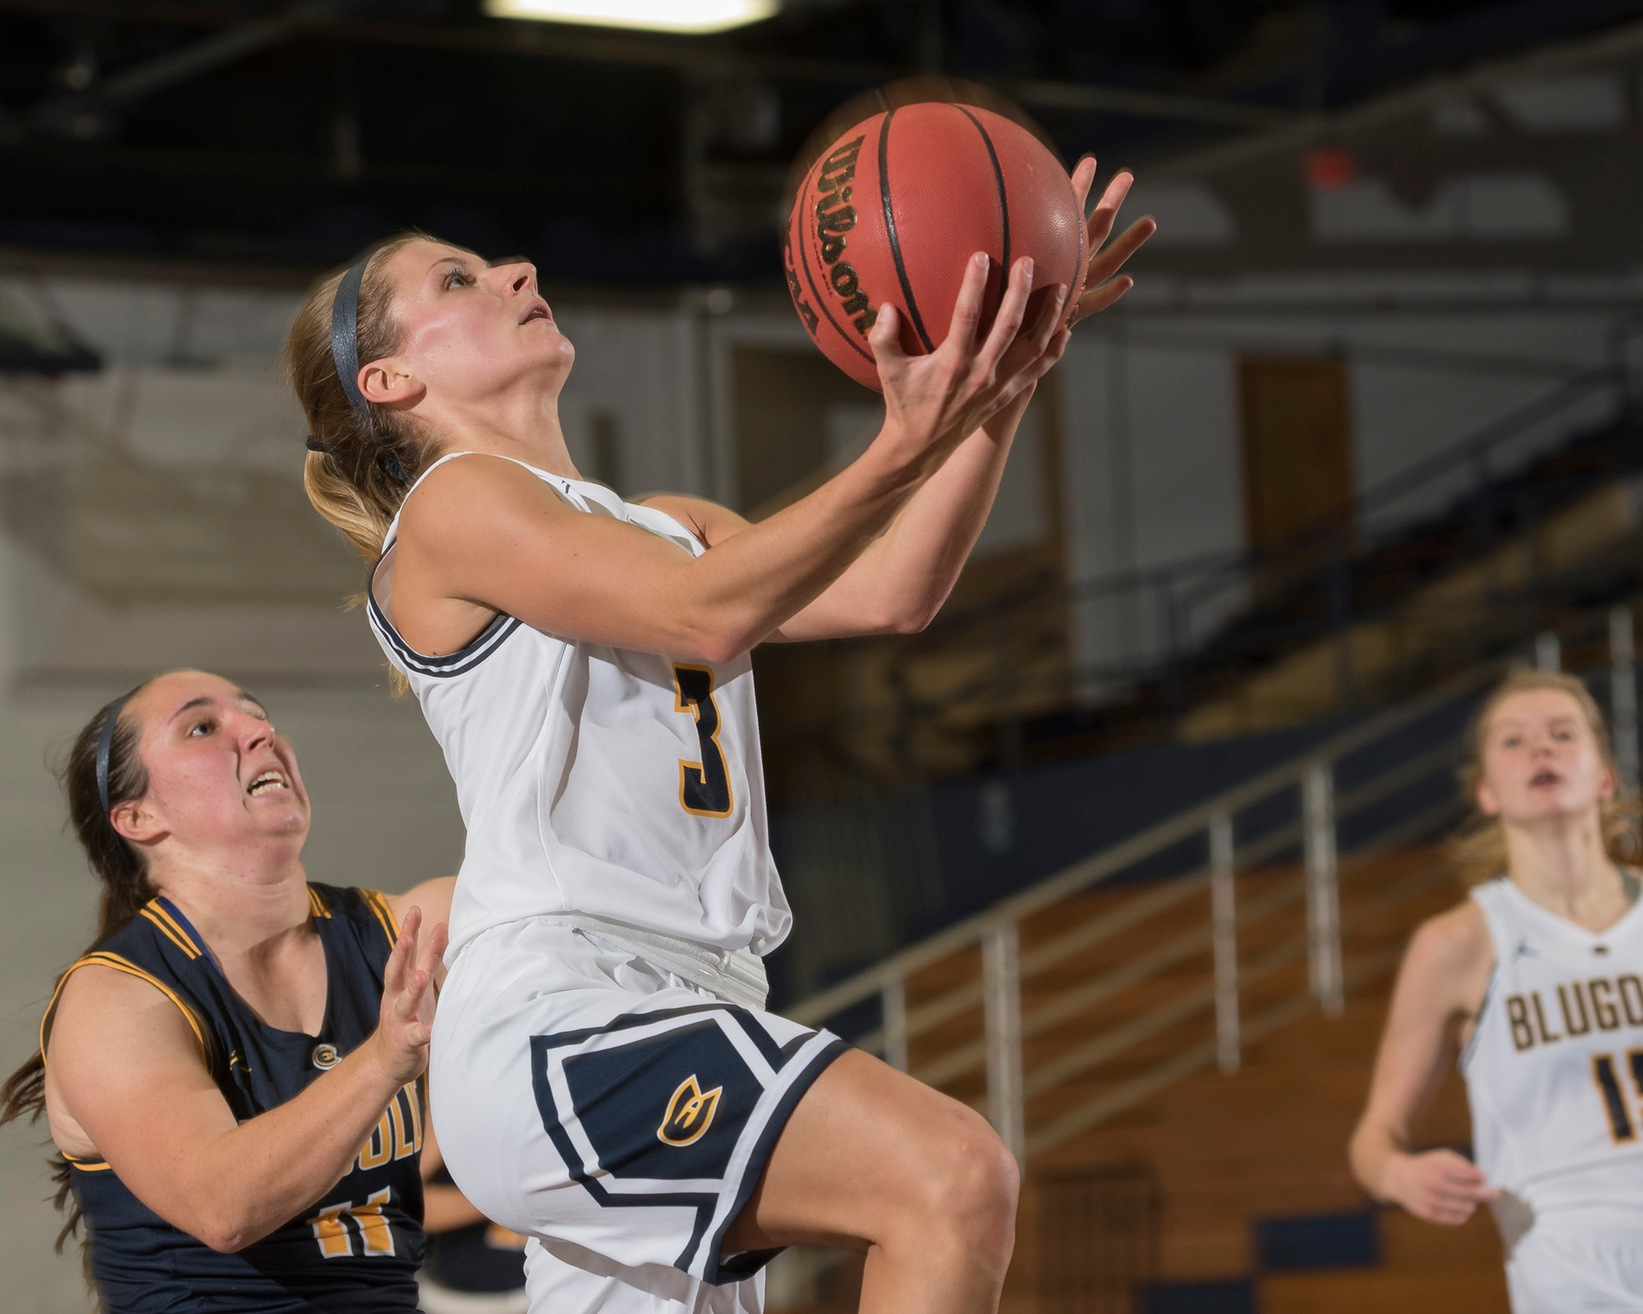 Bakken's 15 and Dunathan's near triple-double give Blugolds win in Texas